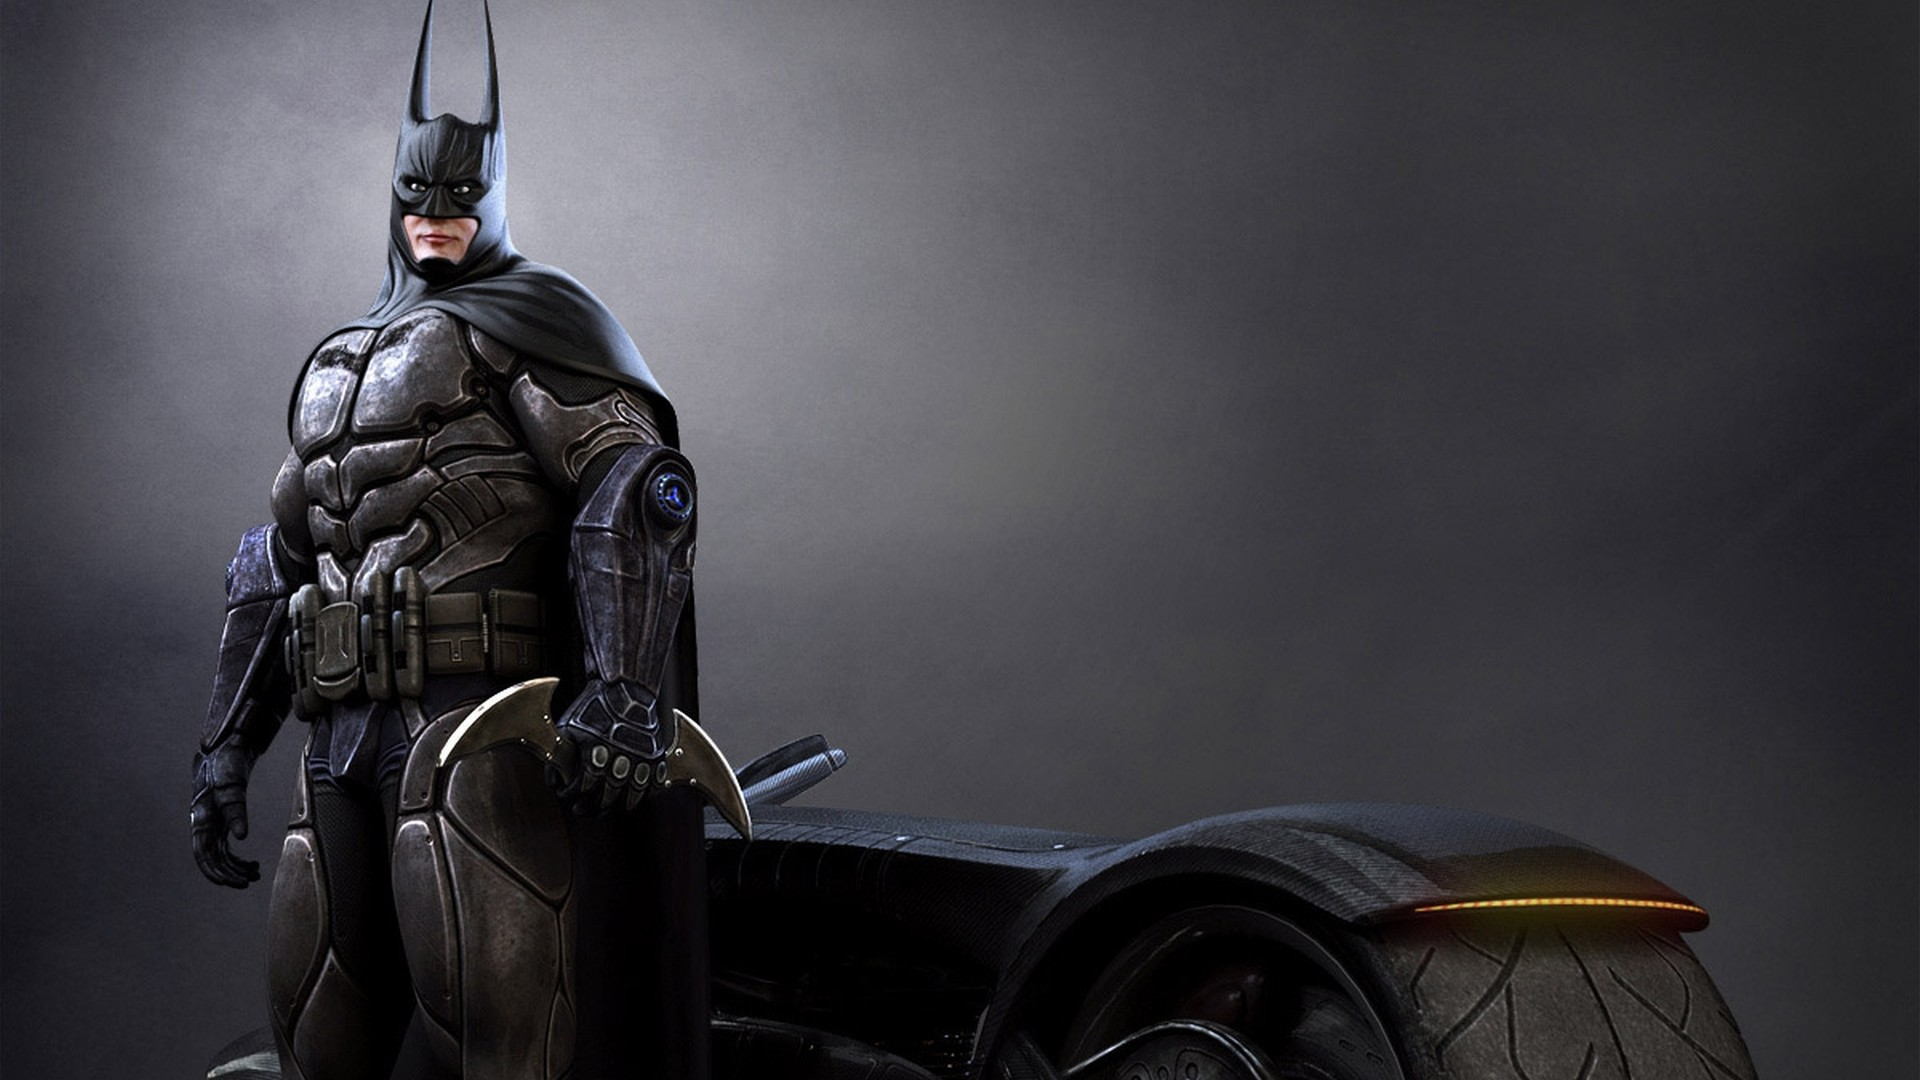 1920x1080 Batman Bike Wallpaper